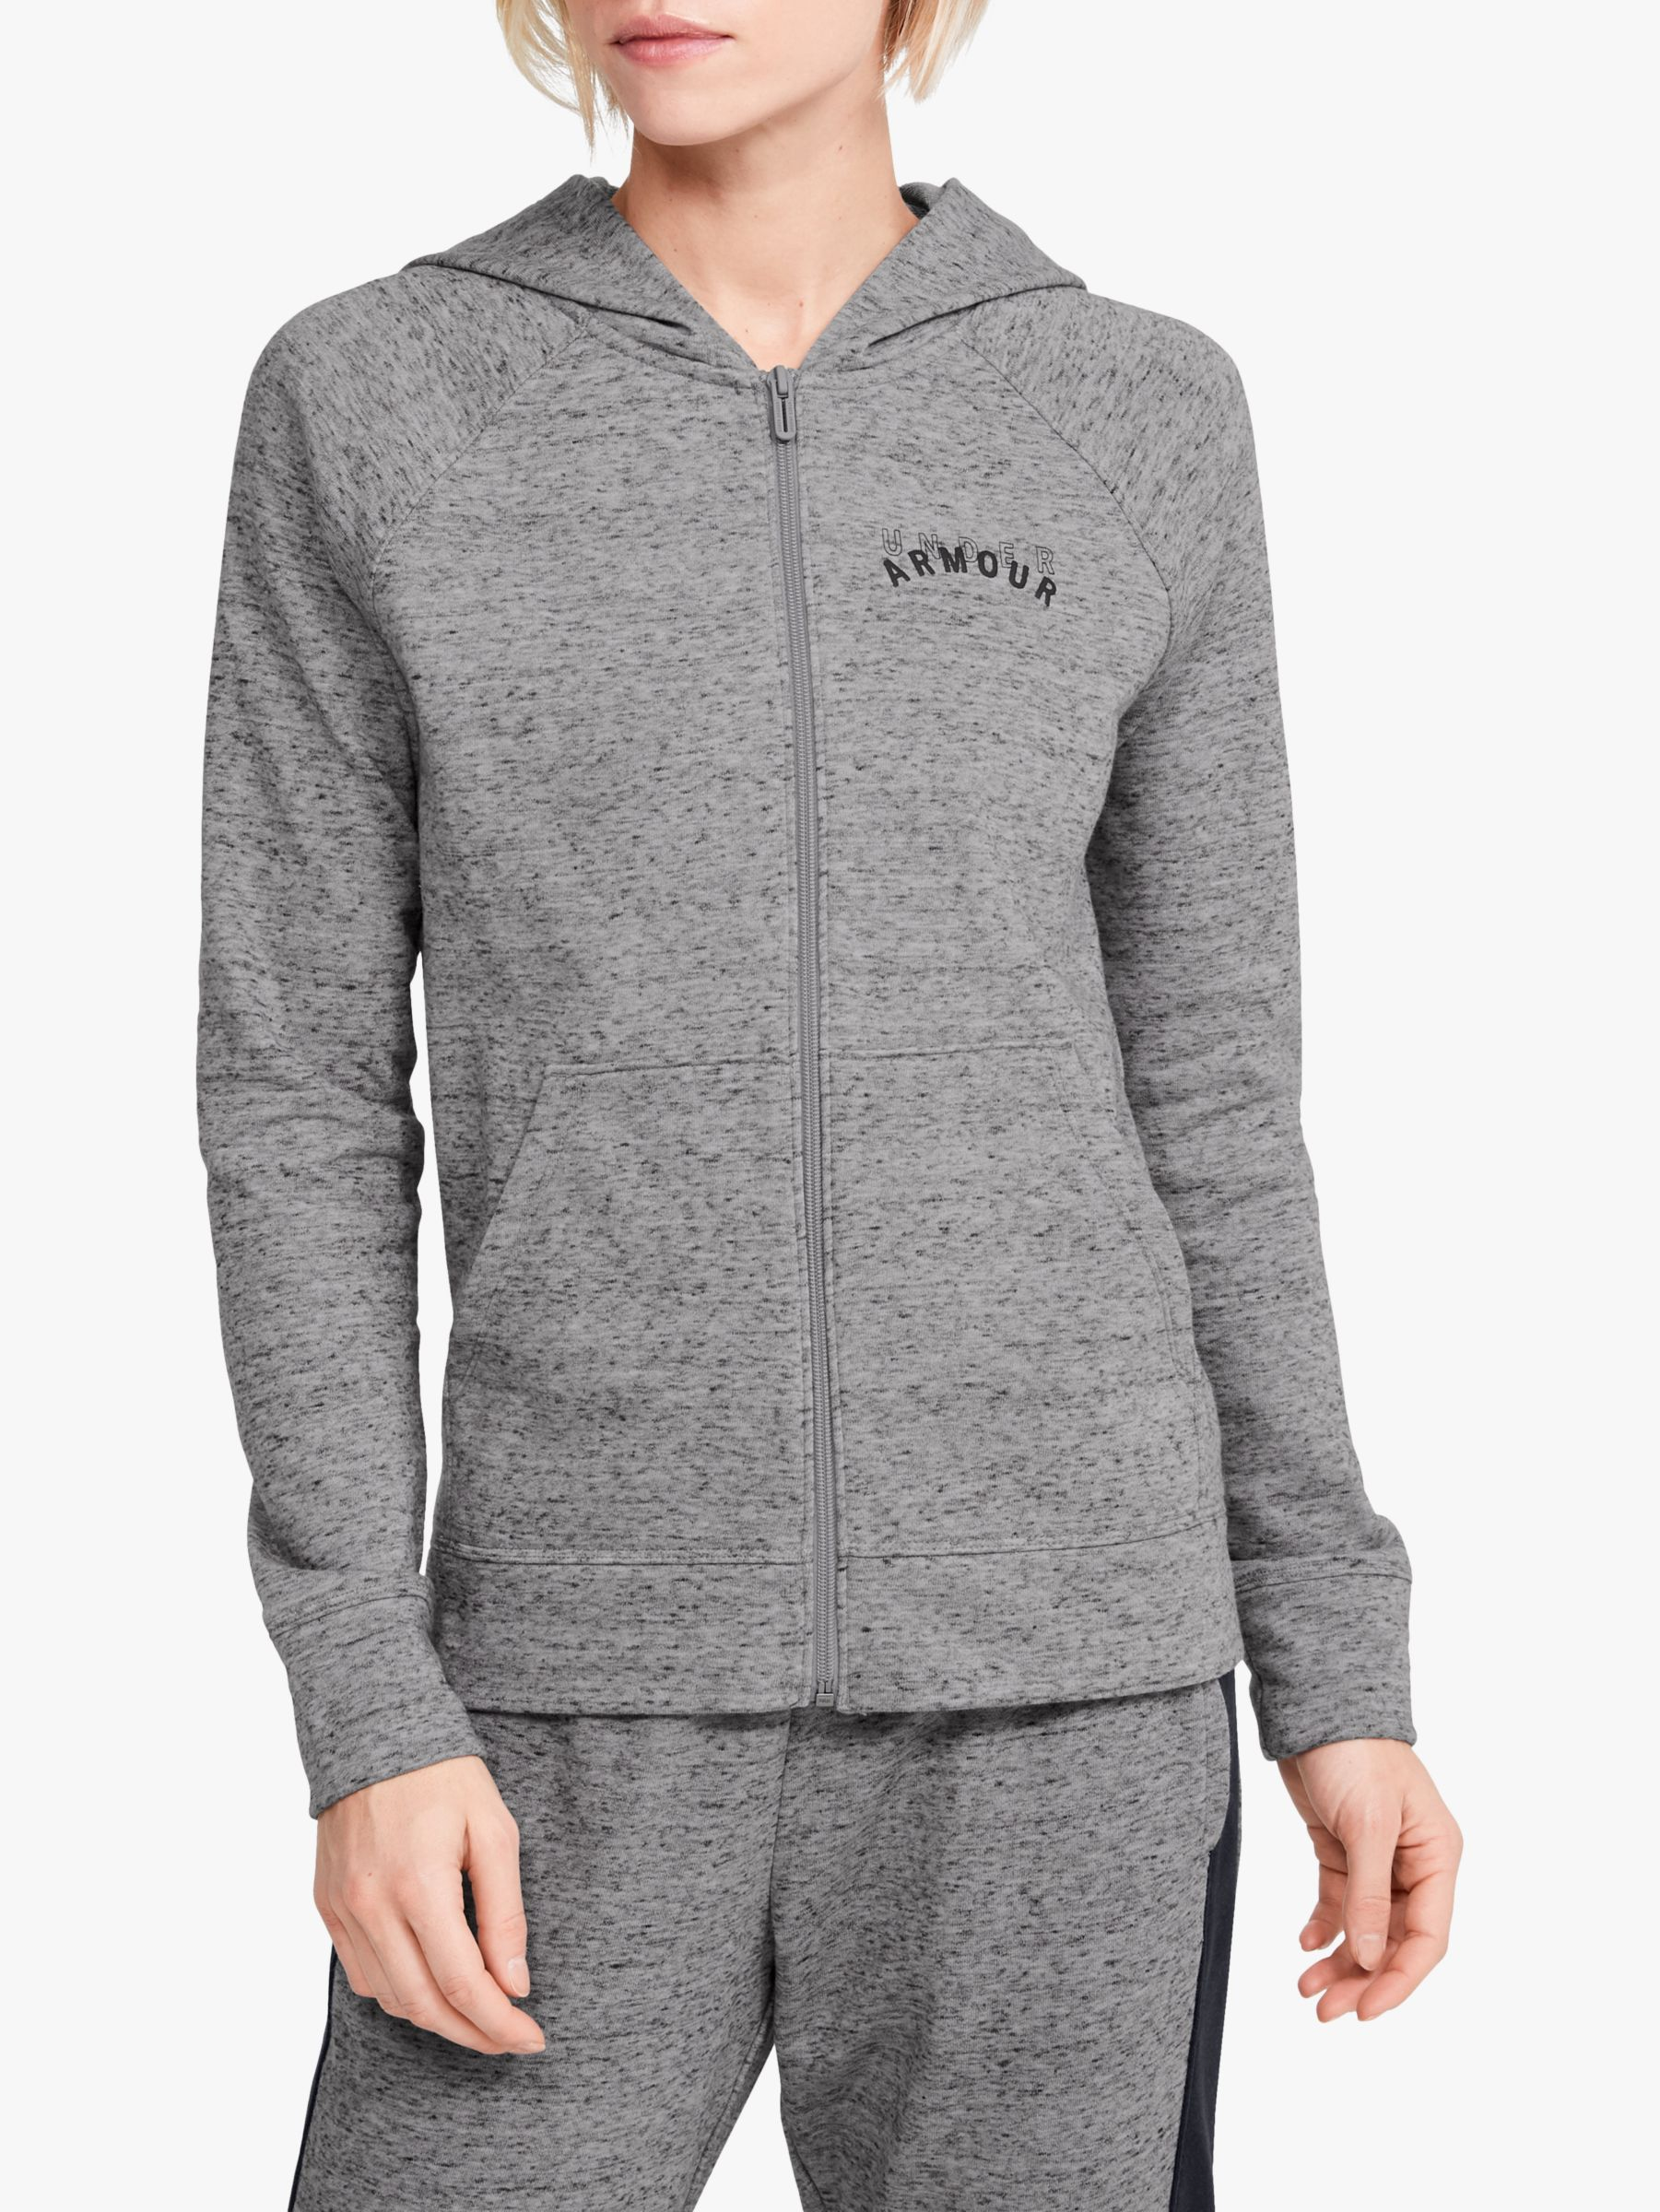 Under Armour Under Armour Rival Terry Full Zip Training Hoodie, Steel Heather